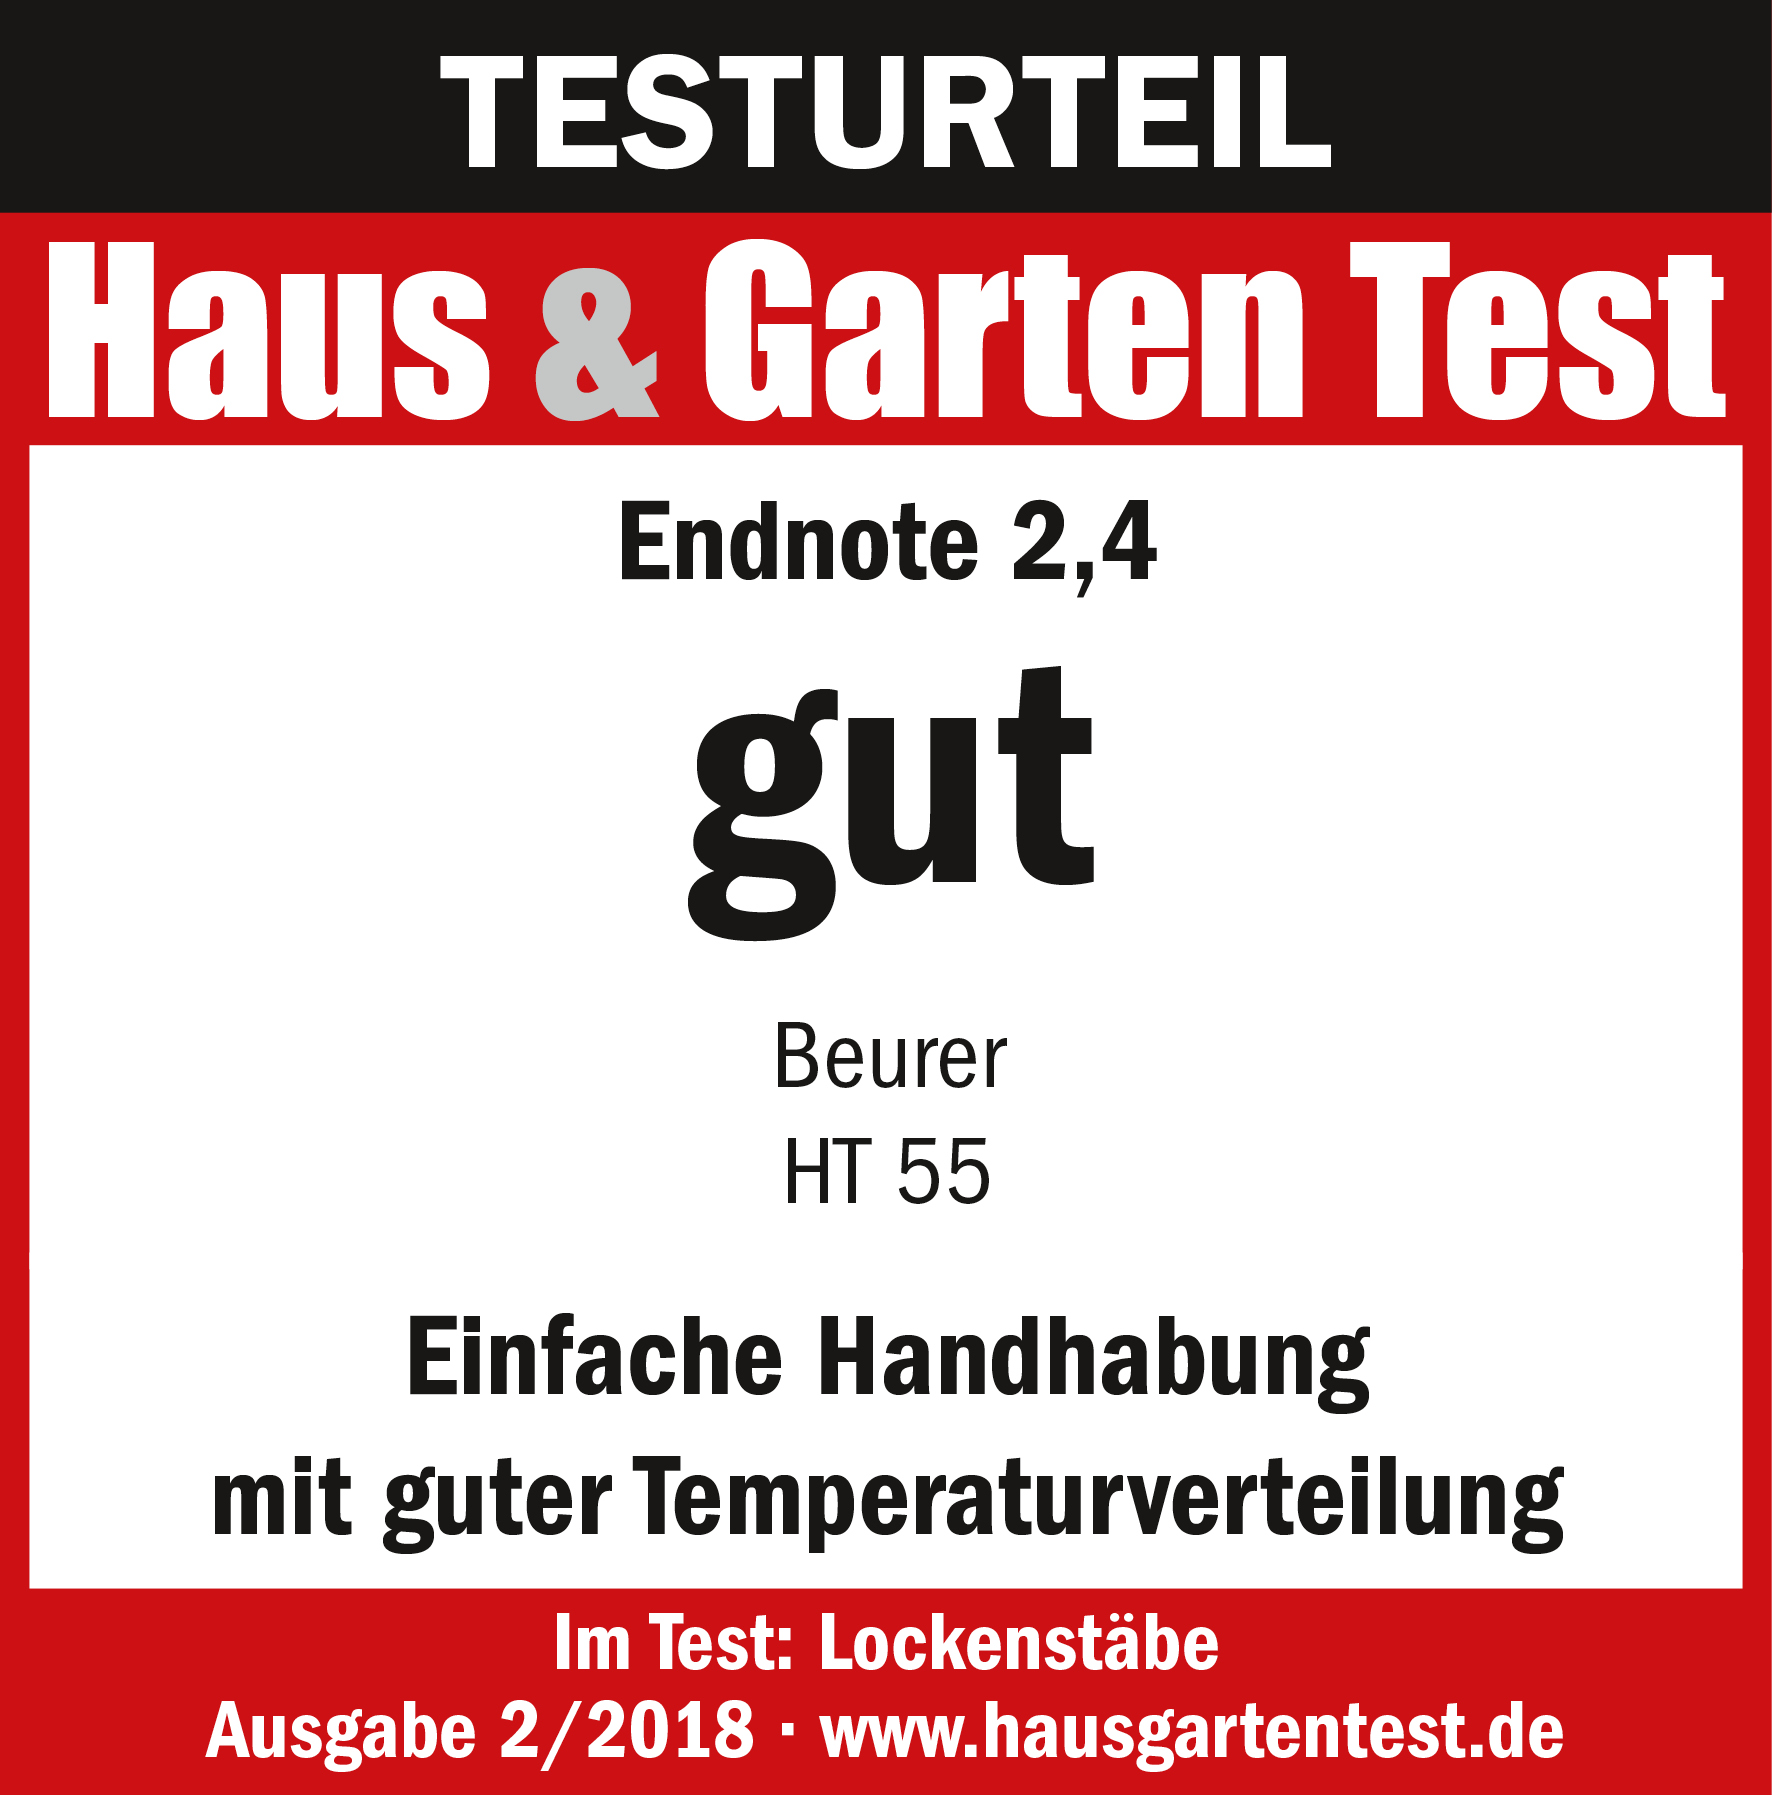 Test result: (2.4) good for the Udo Walz by beurer HT 55 curling tongs, 02/2018